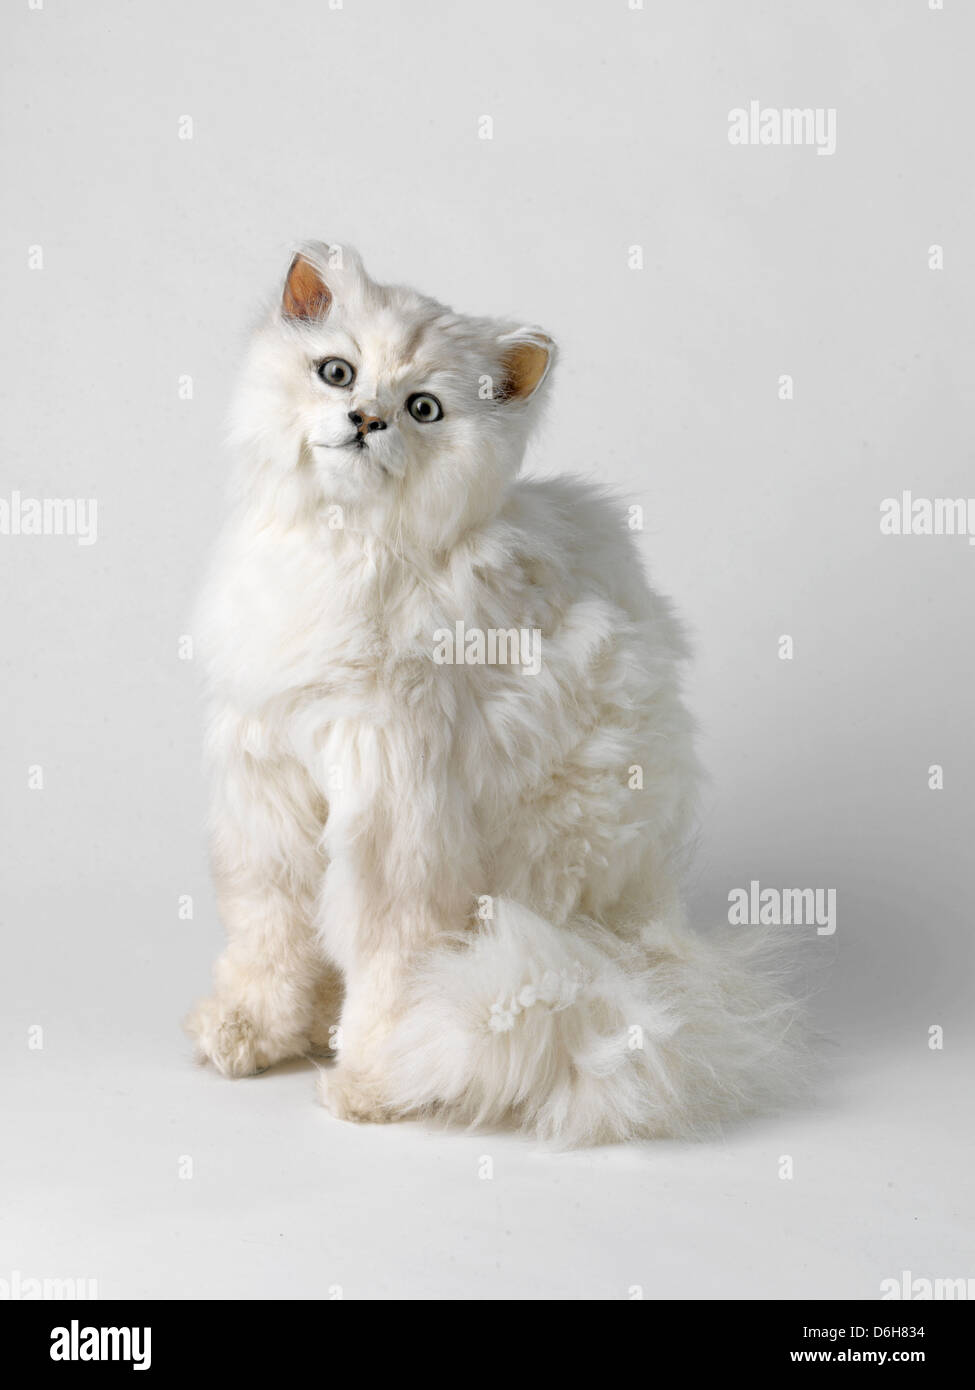 Taxidermied cat with head tilted - Stock Image